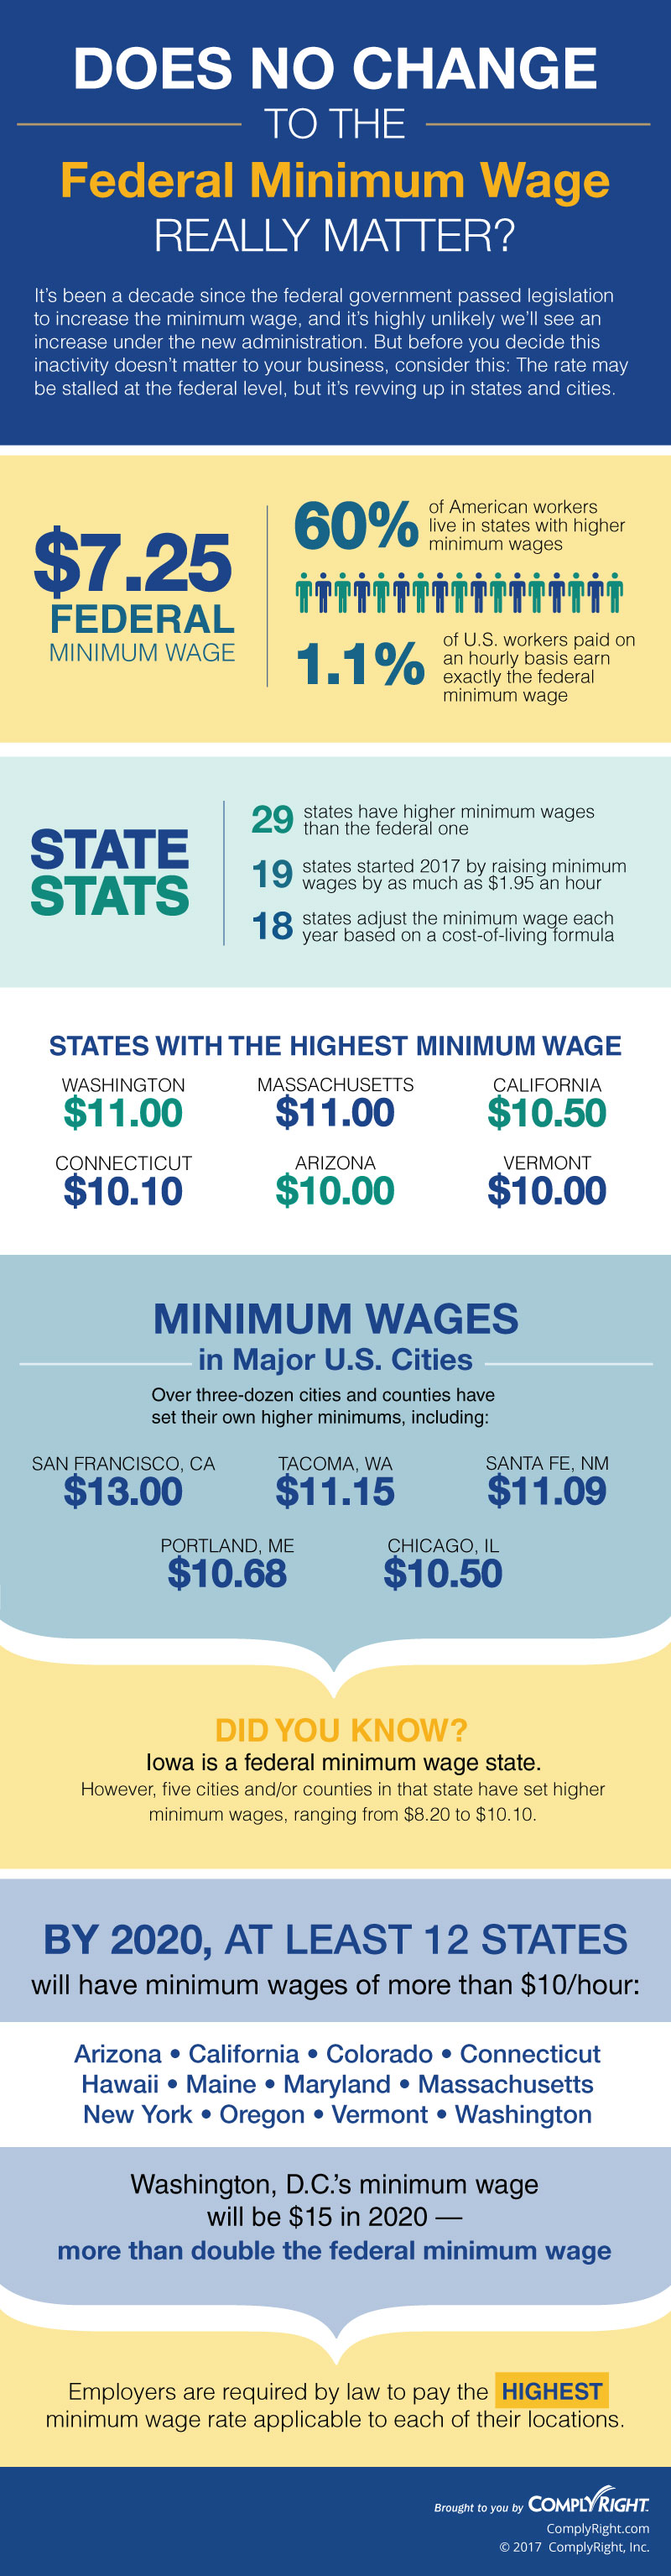 Does No Change to the Federal Minimum Wage Really Matter?